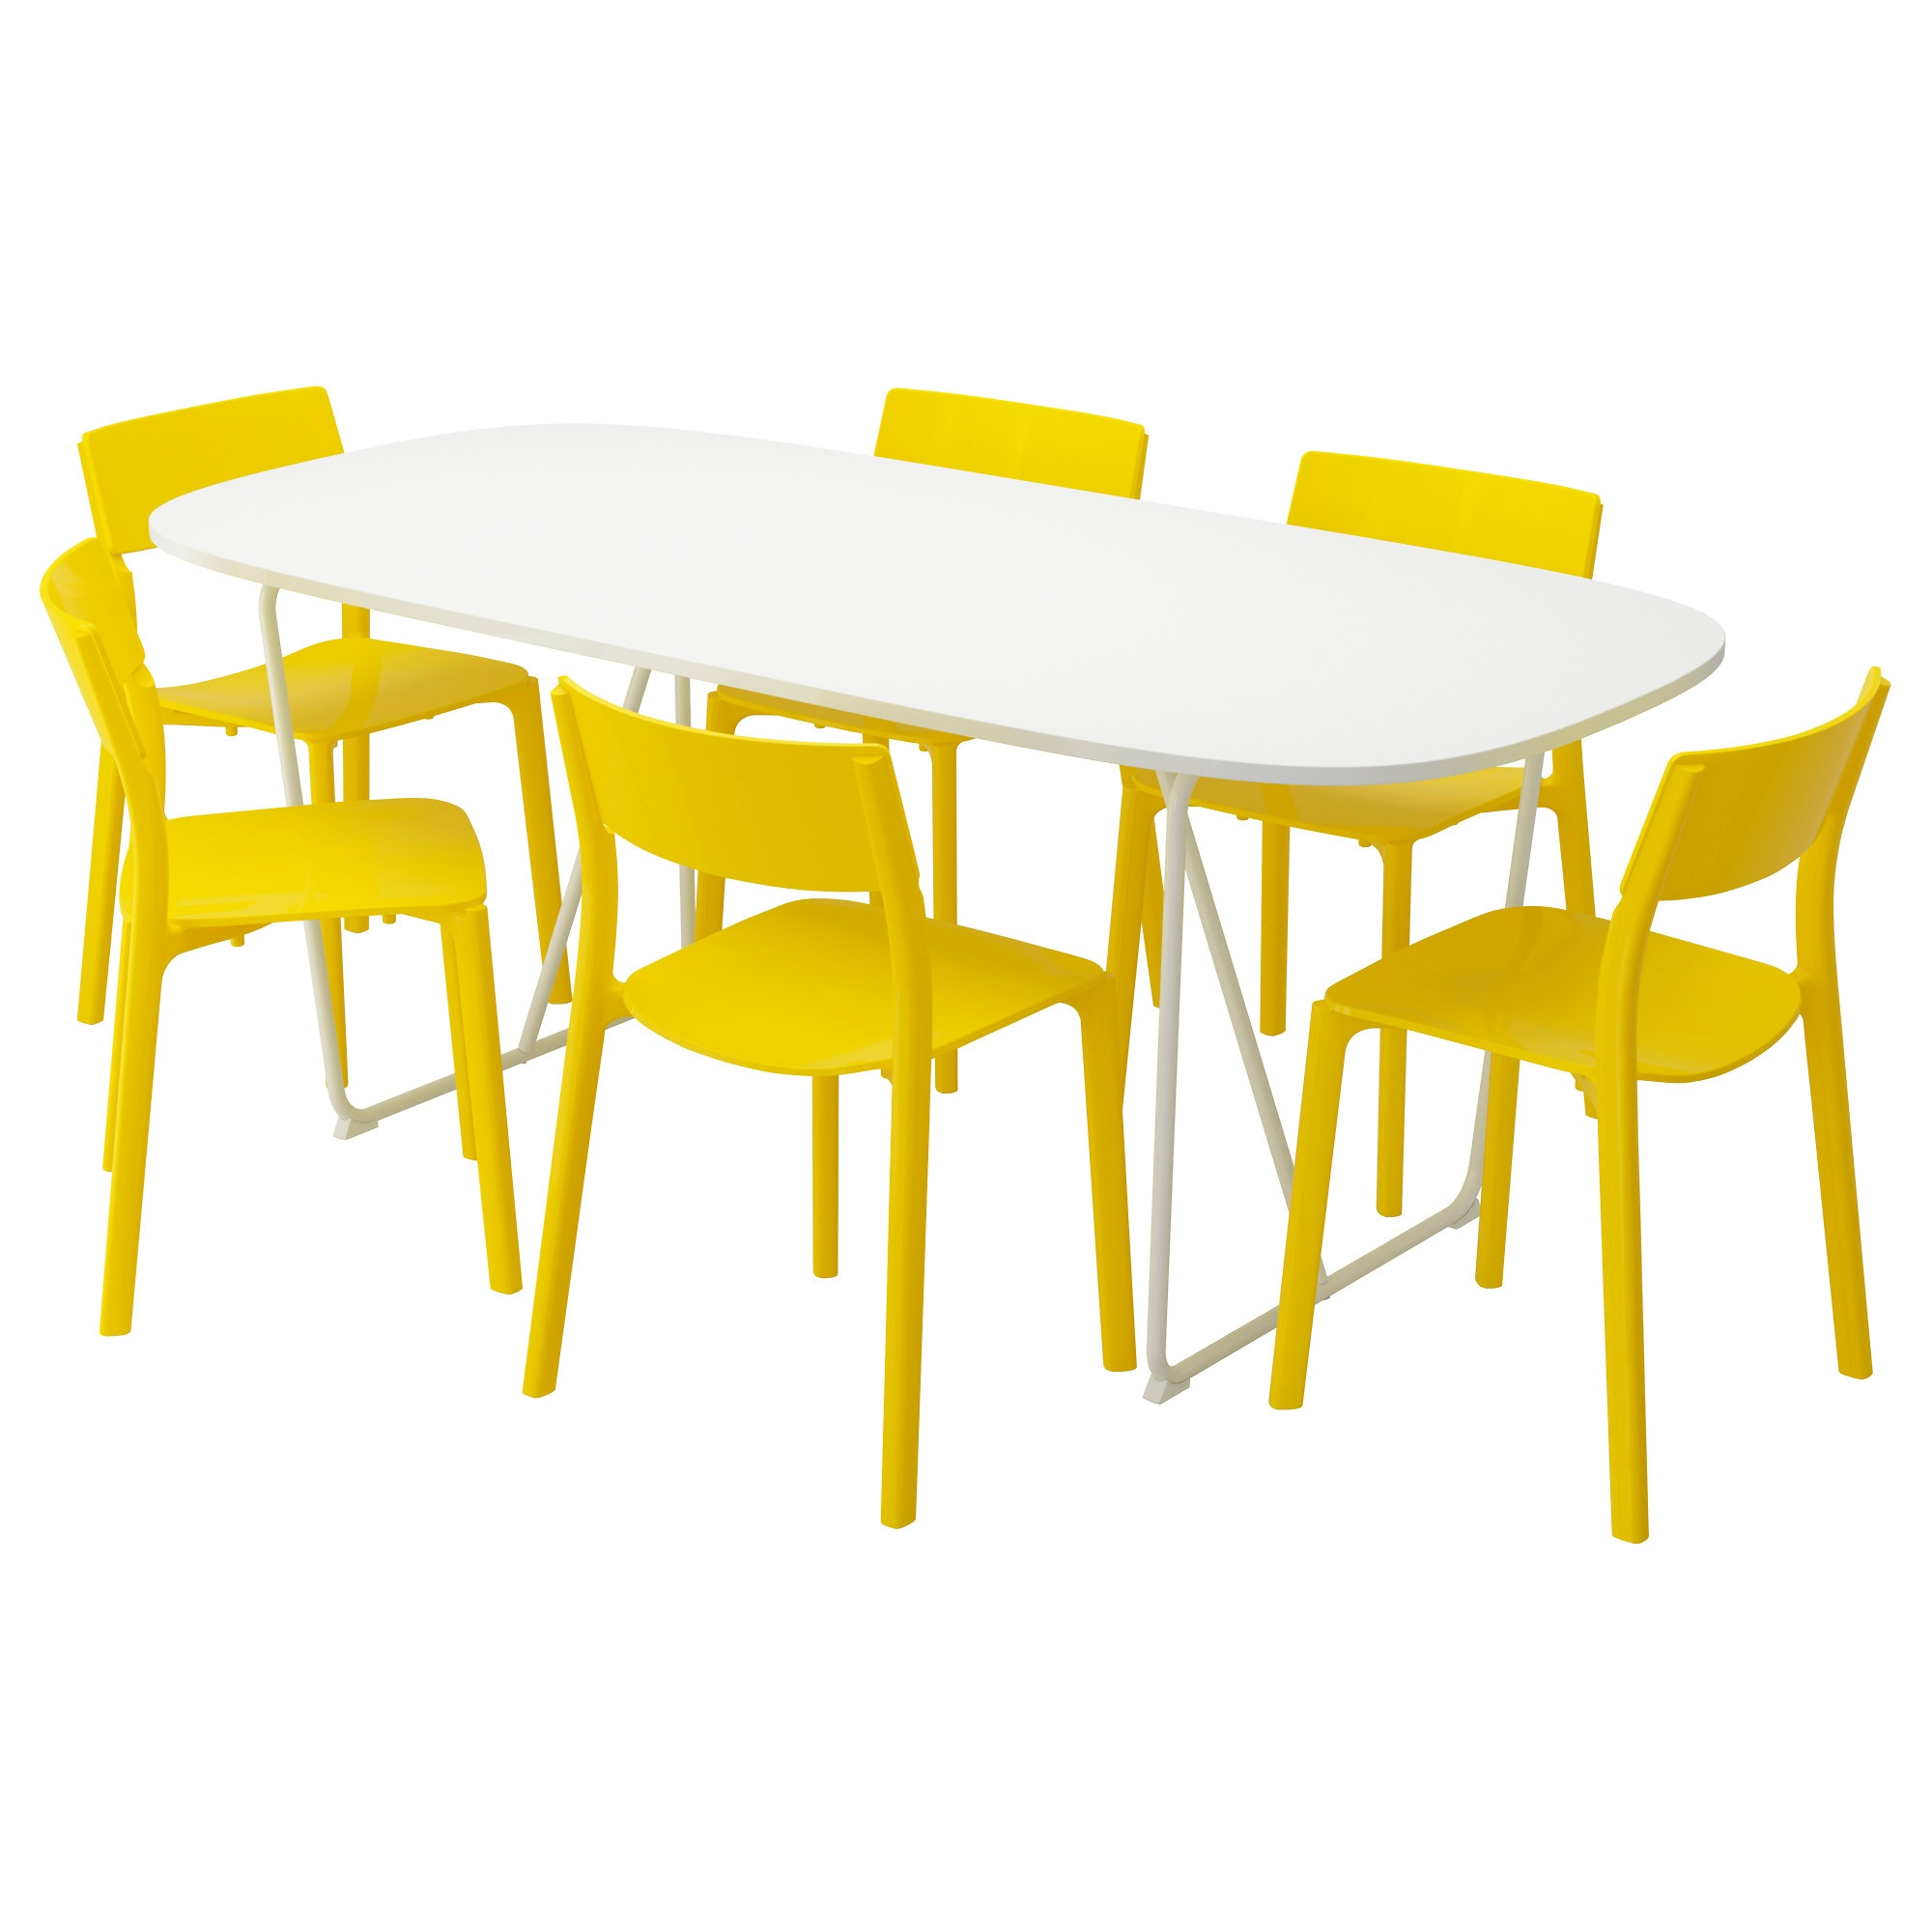 oppeby backaryd janinge table and 6 chairs ikea